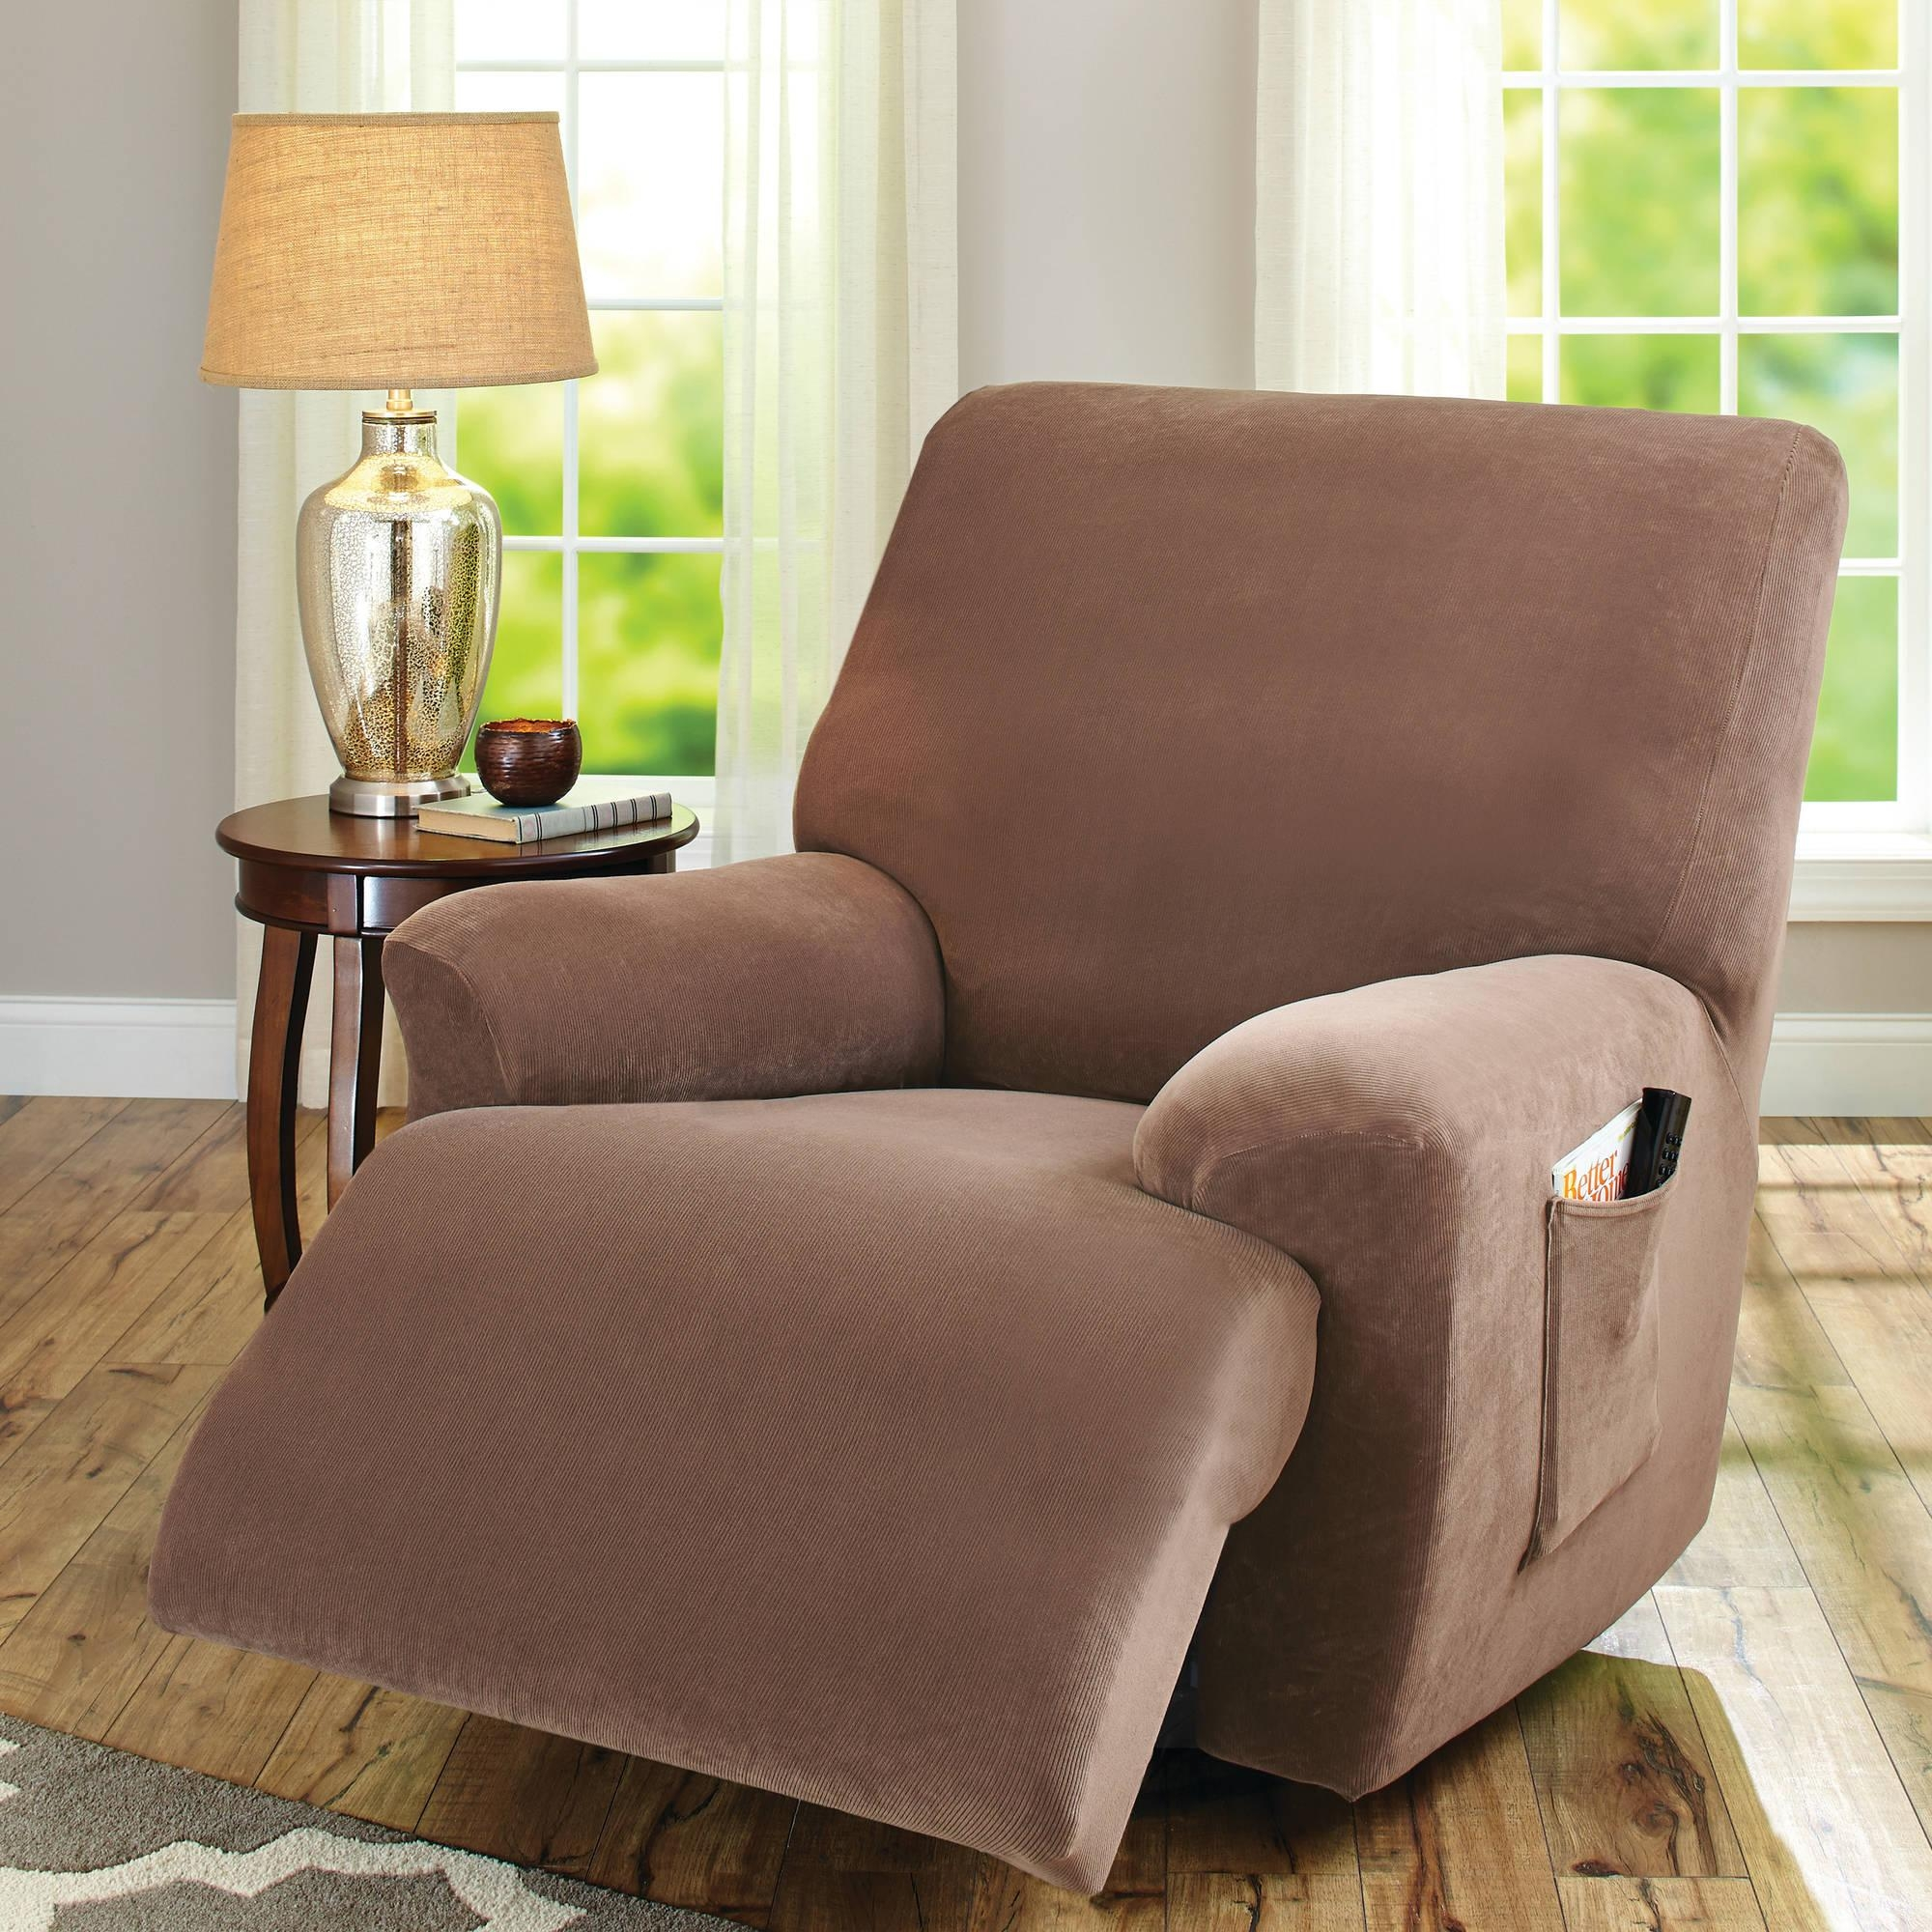 Sofas Center : Sure Fit Dual Reclining Sofa Couch Slipcover Throughout Slipcover For Recliner Sofas (Image 20 of 20)